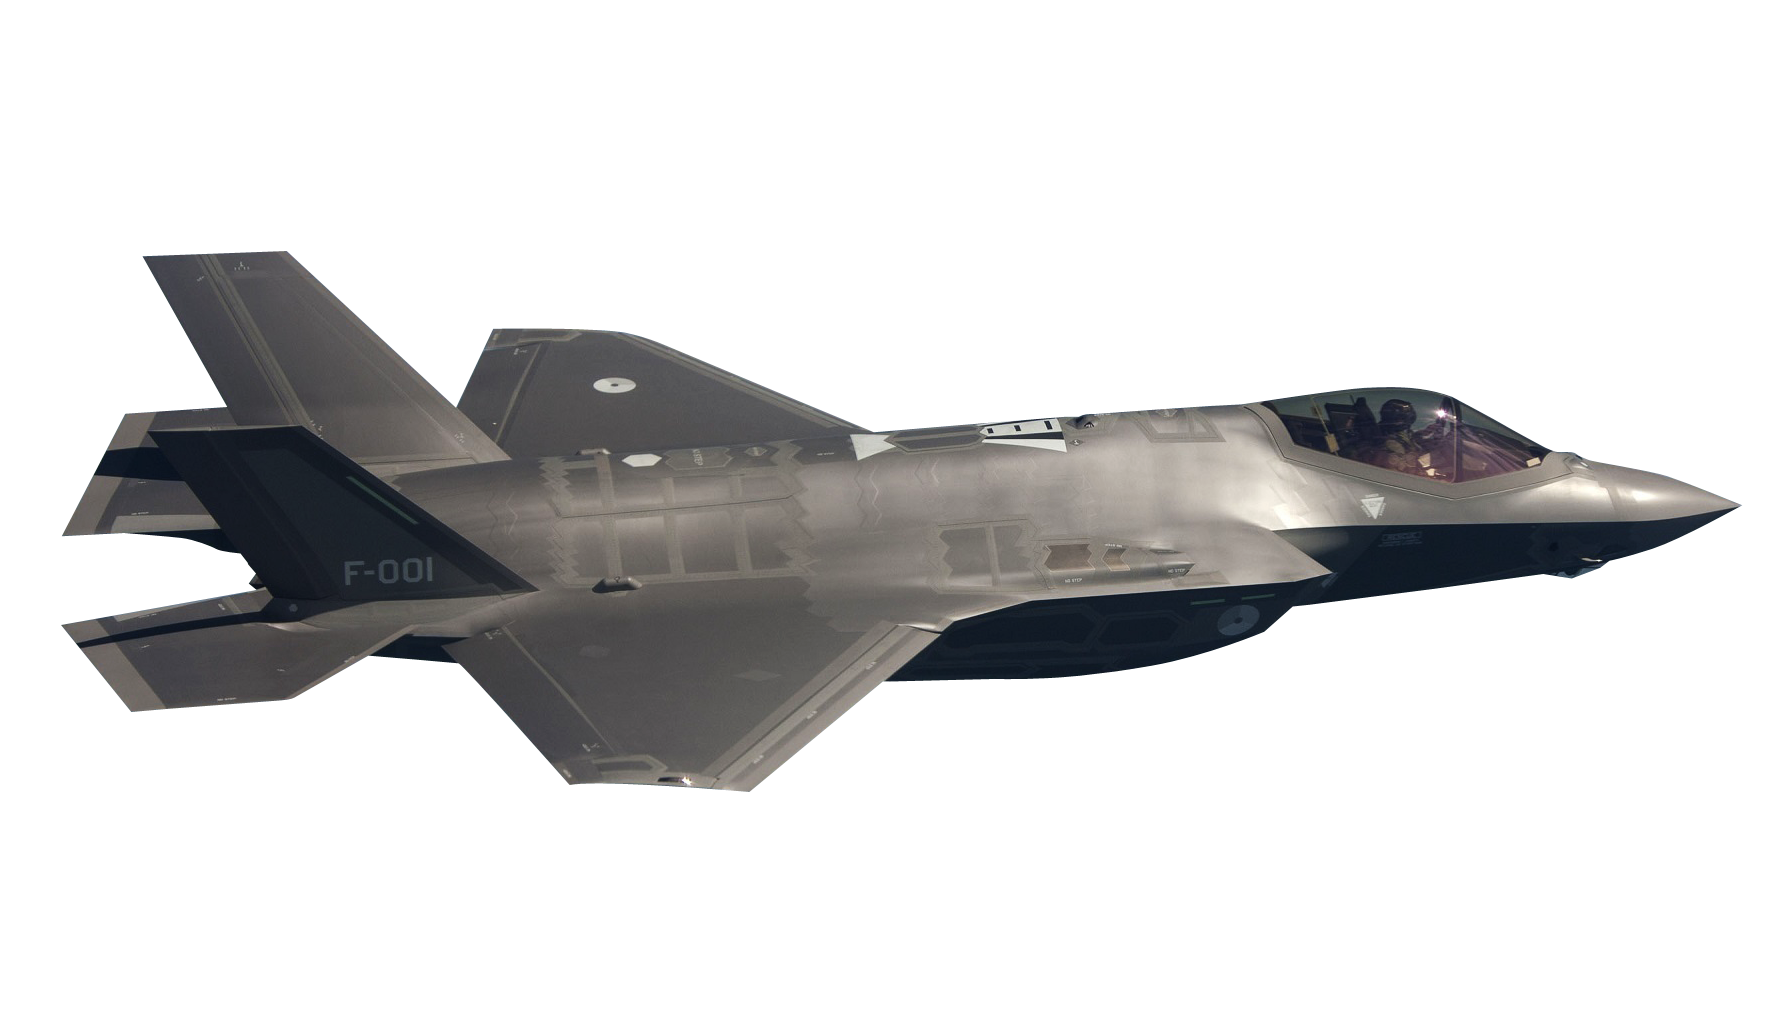 Military Jet Png Image Fighter Jets Military Jets Fighter